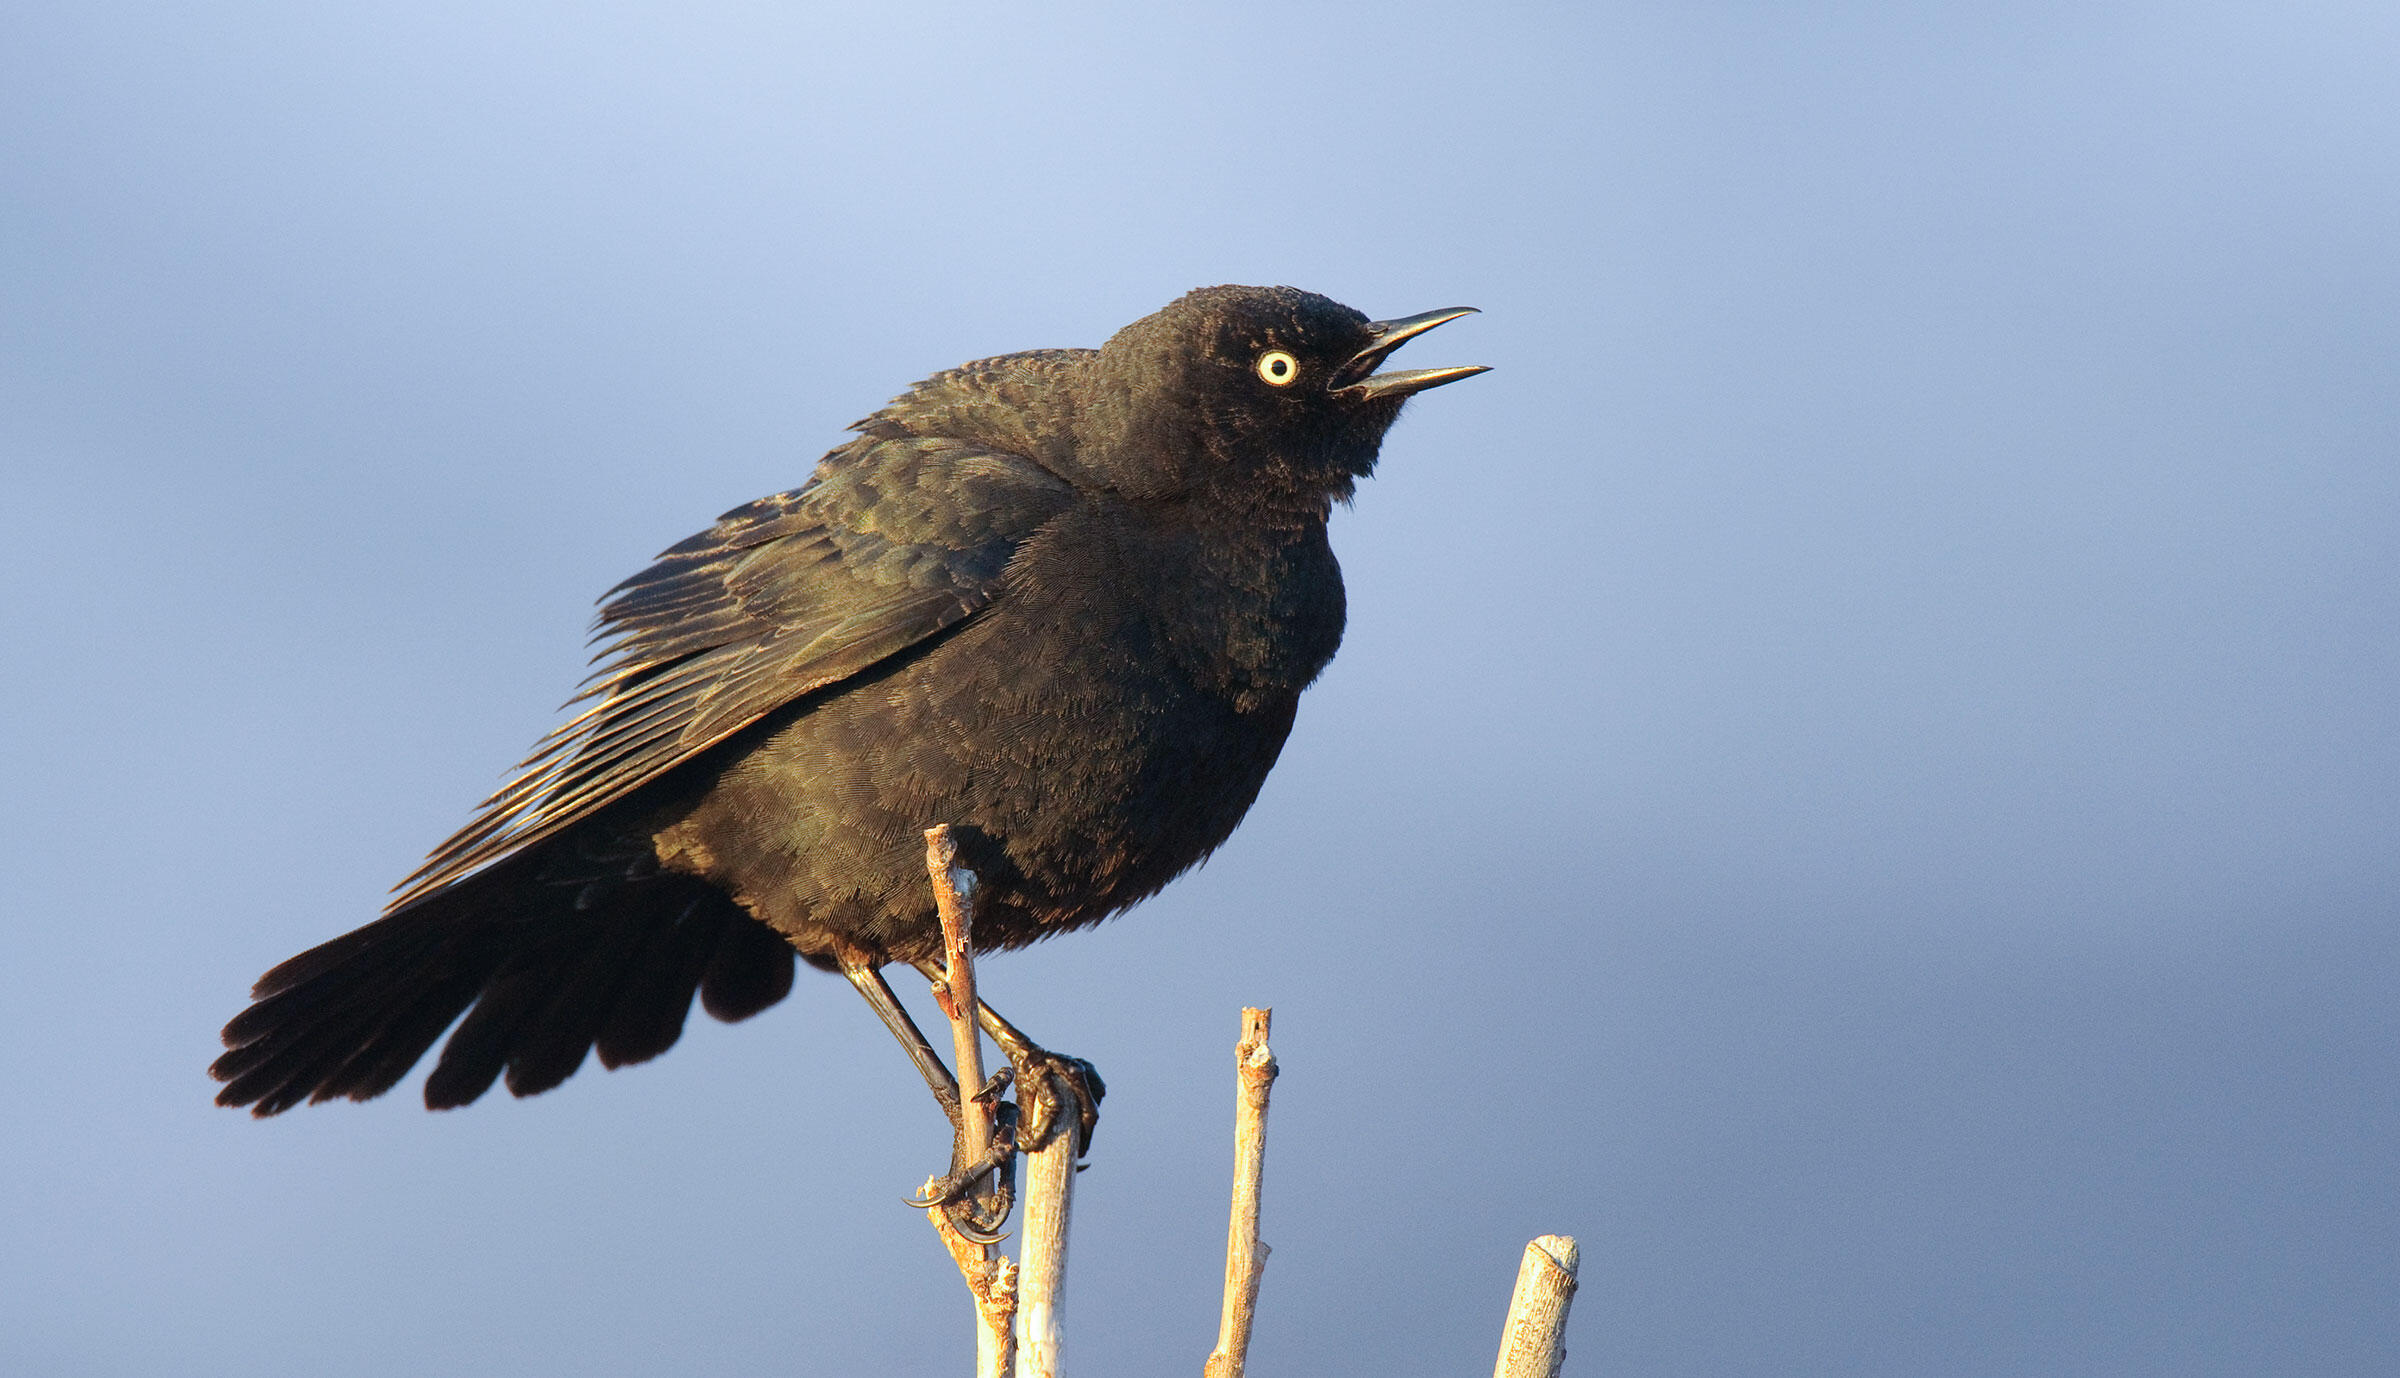 In sun, the male Rusty Blackbird looks browner than usual. But its namesake song remains the same. Gerrit Vyn/Minden Pictures